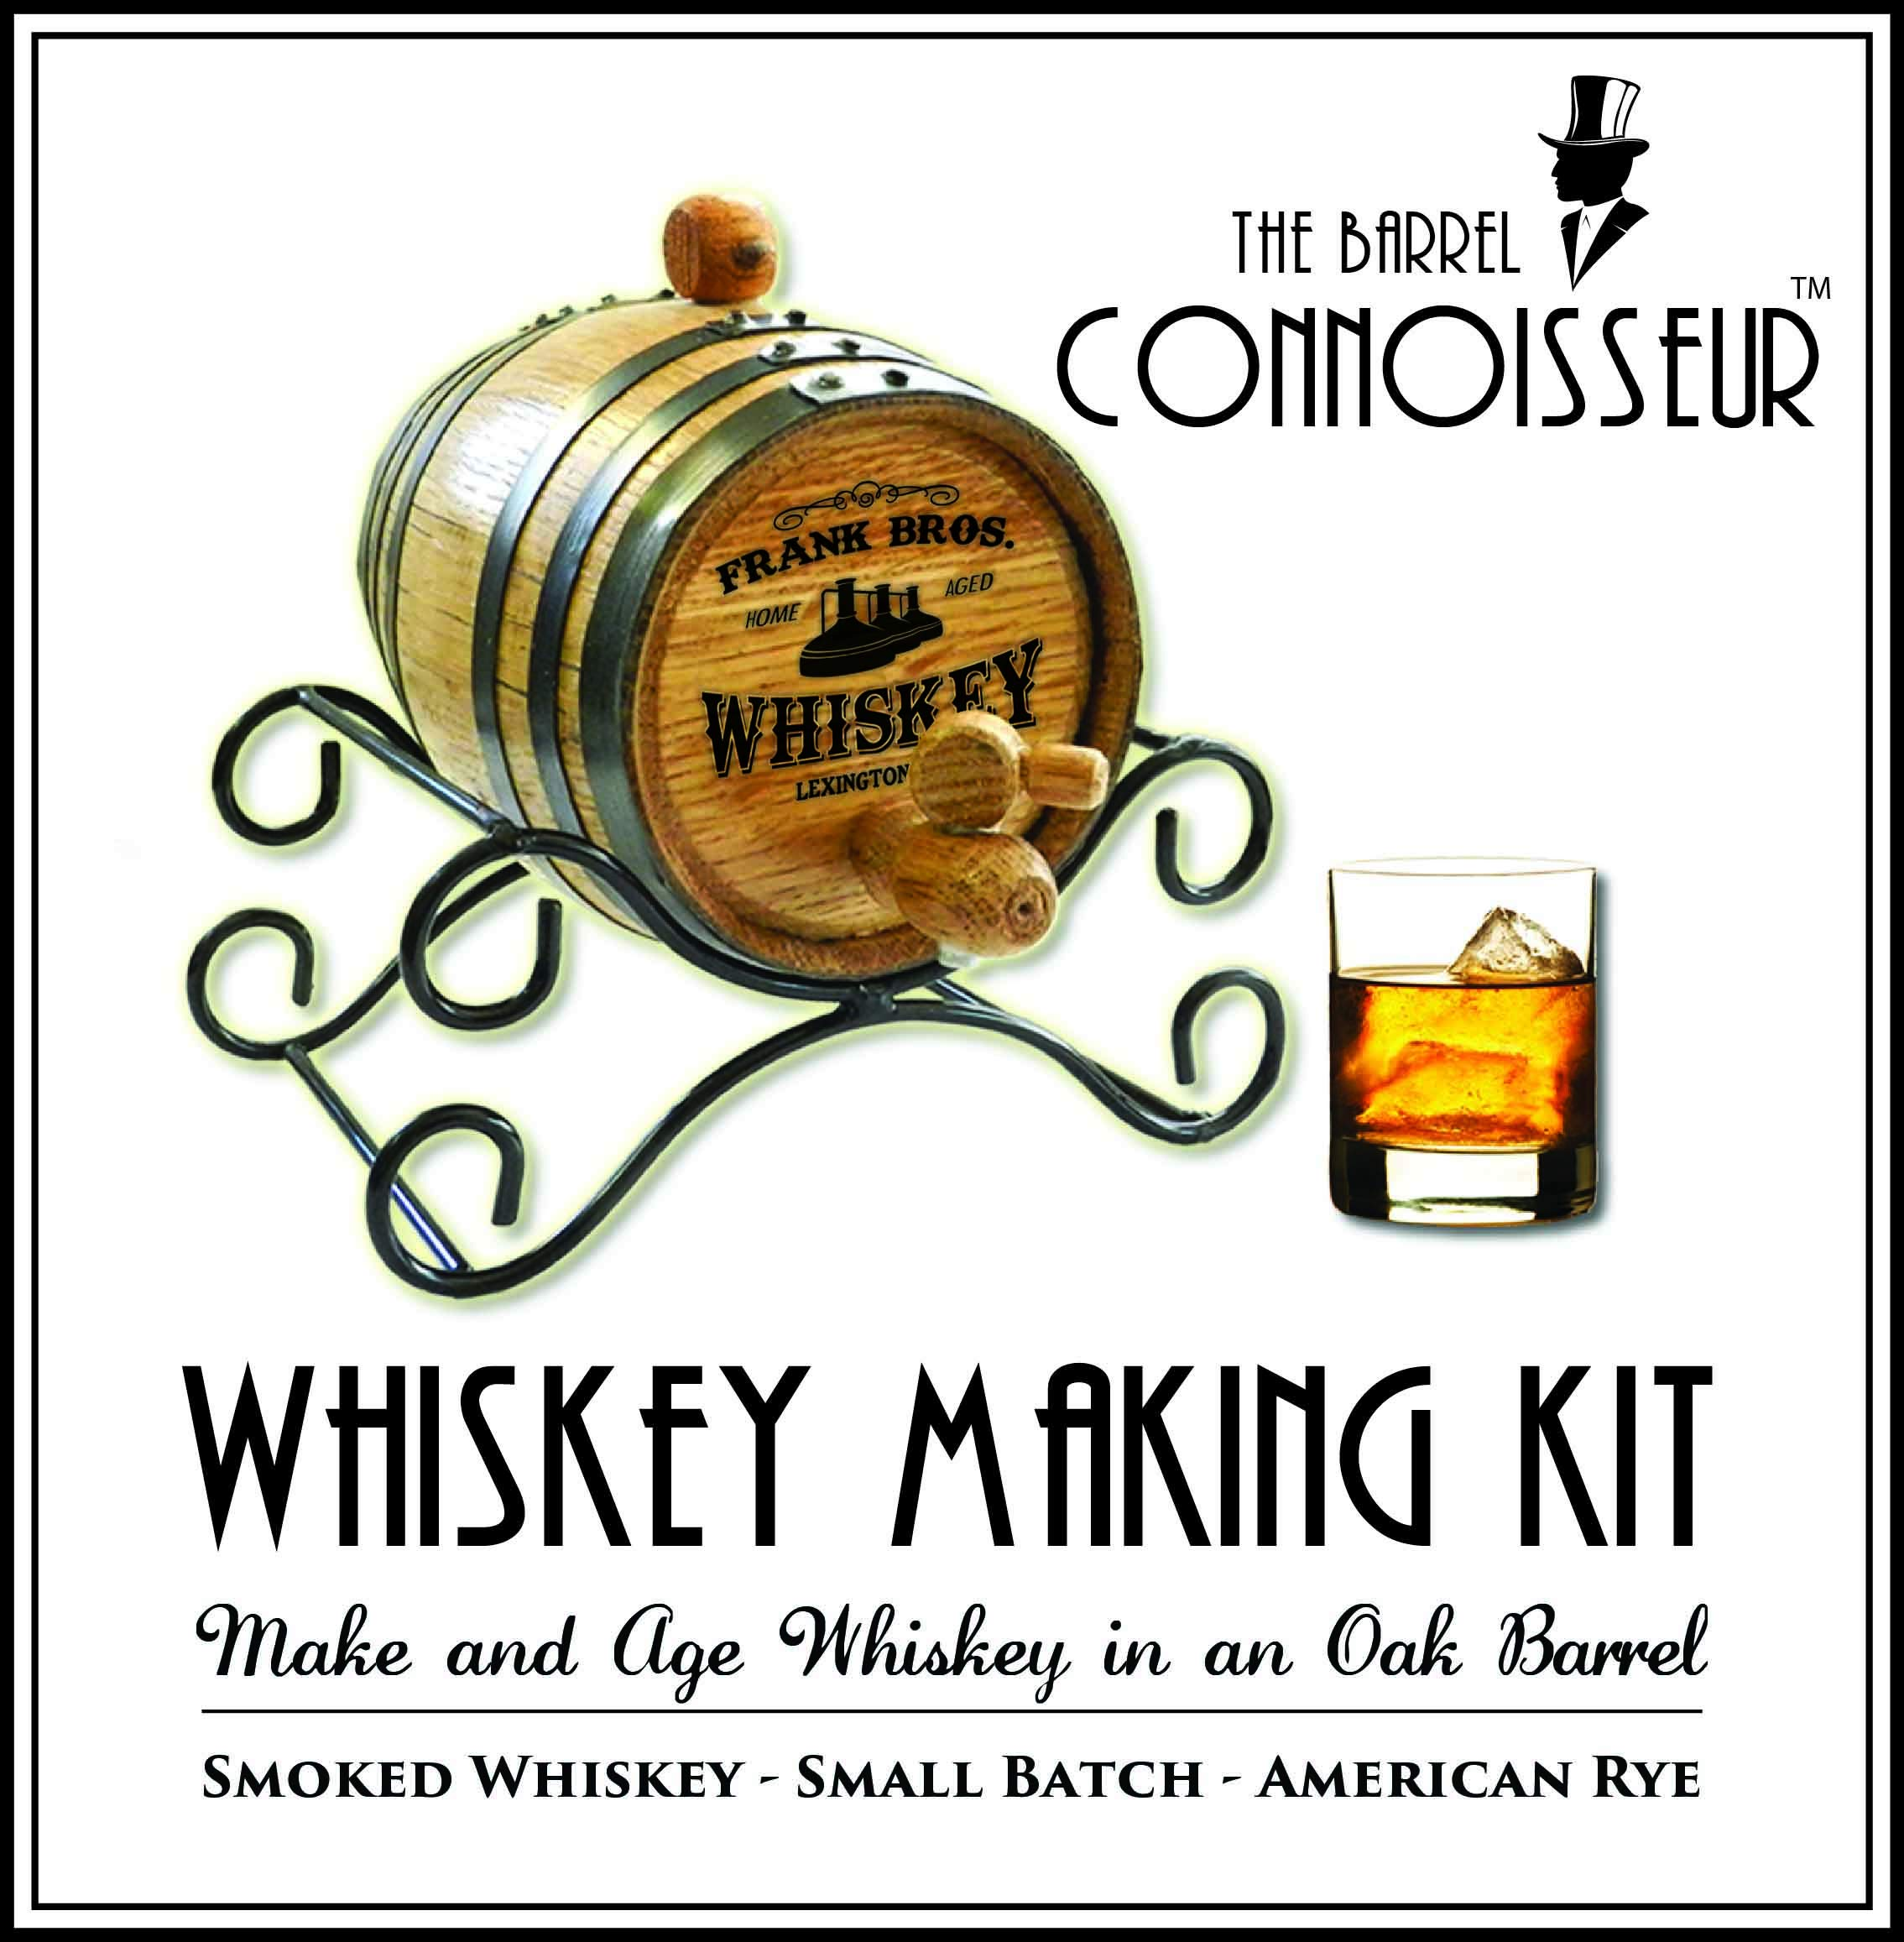 Personalized Barrel Connoisseur Whiskey Making Kit (2 Liter)